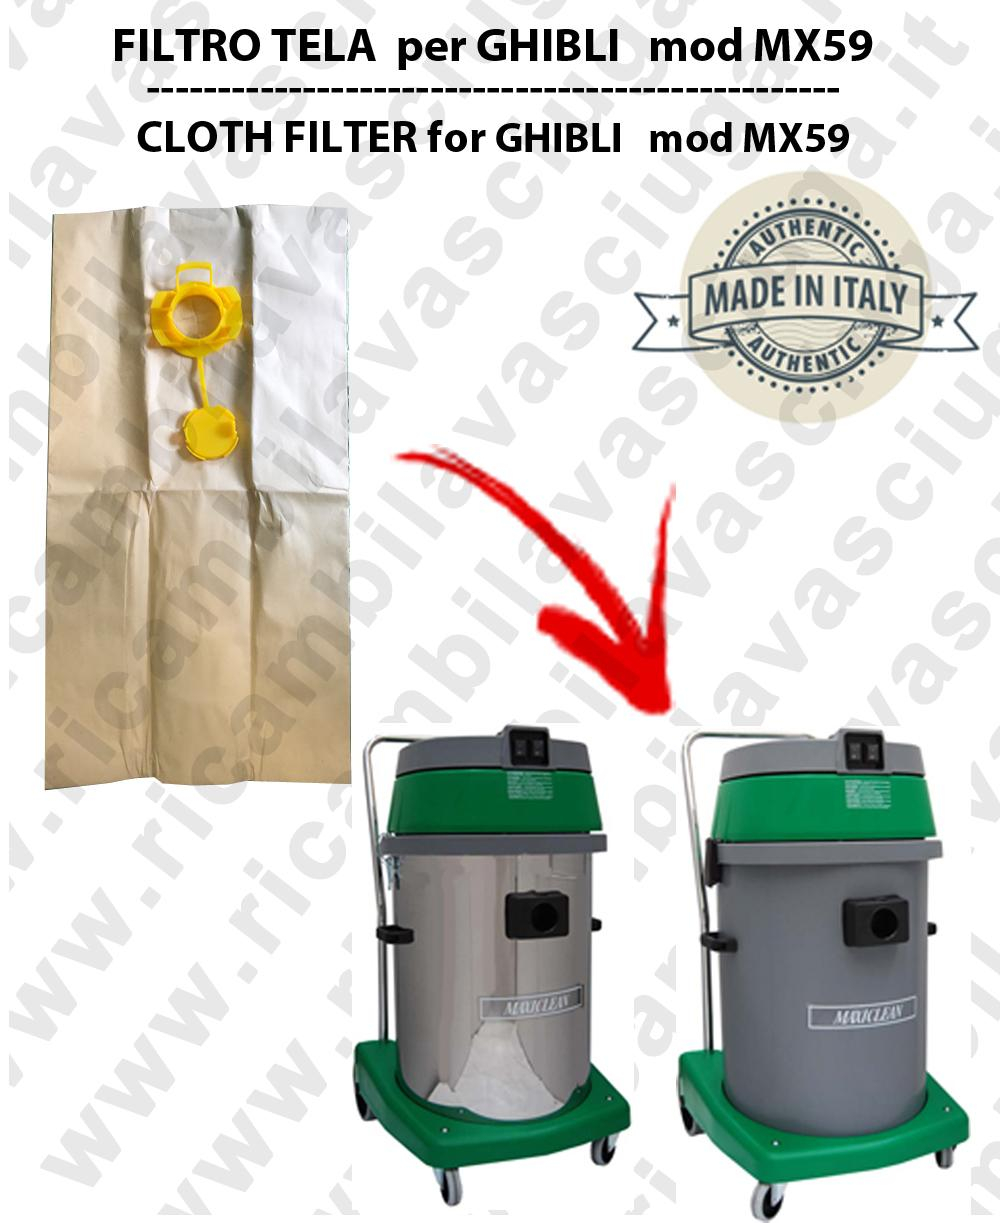 Sacco carta litres 19 with plug for MAXICLEAN mod MX 59 - conf. 10 pieces - vacuum cleaner SYNCLEAN